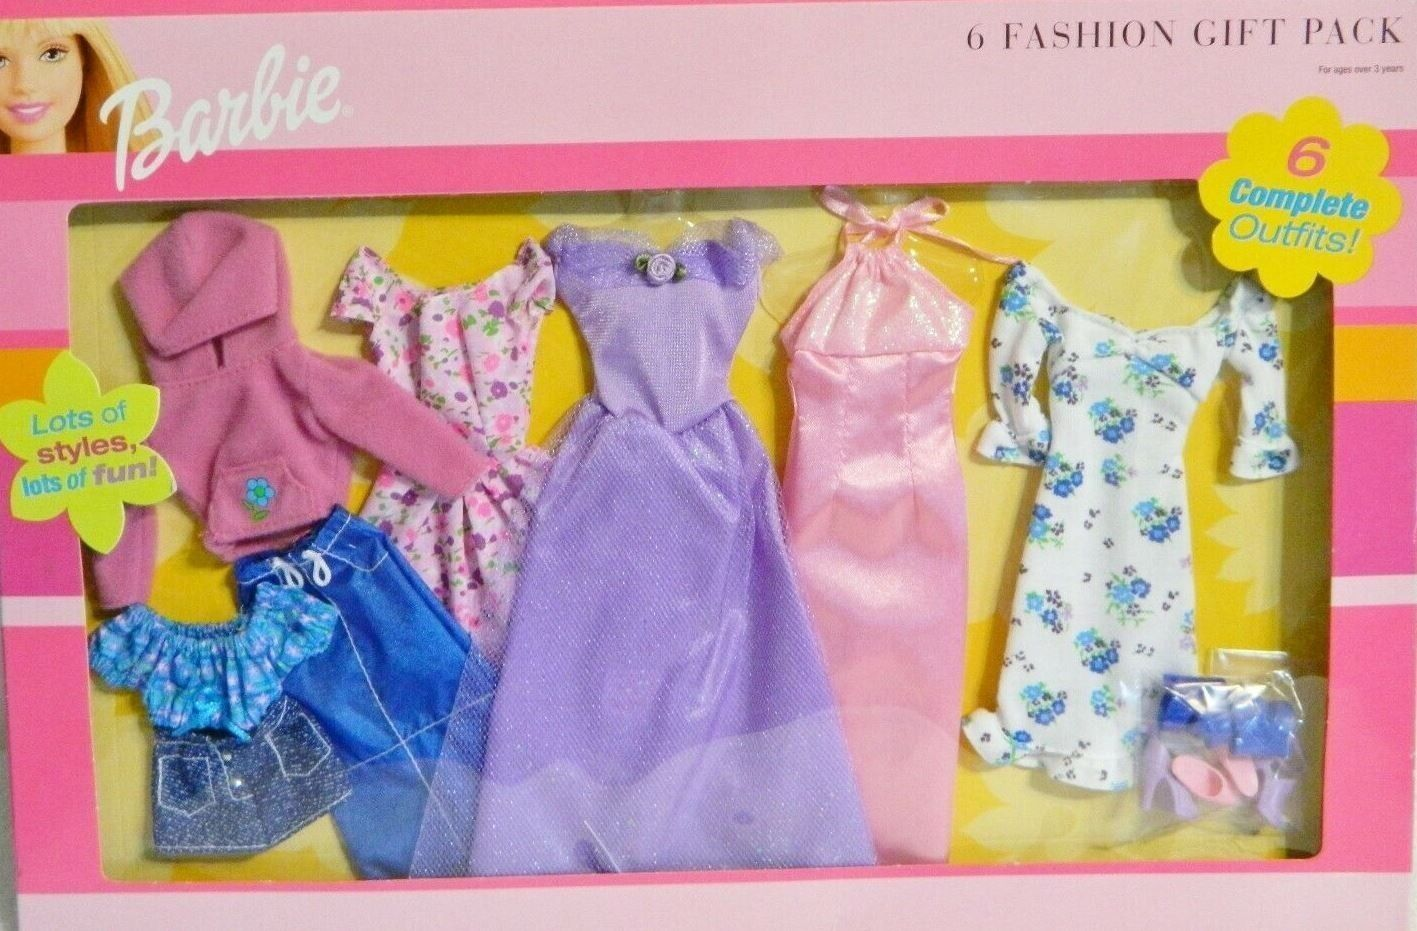 ✿ ܓ Barbie Doll Clothes 6 Fashions Gift Pack Striped Pink Pants ✿ ܓ